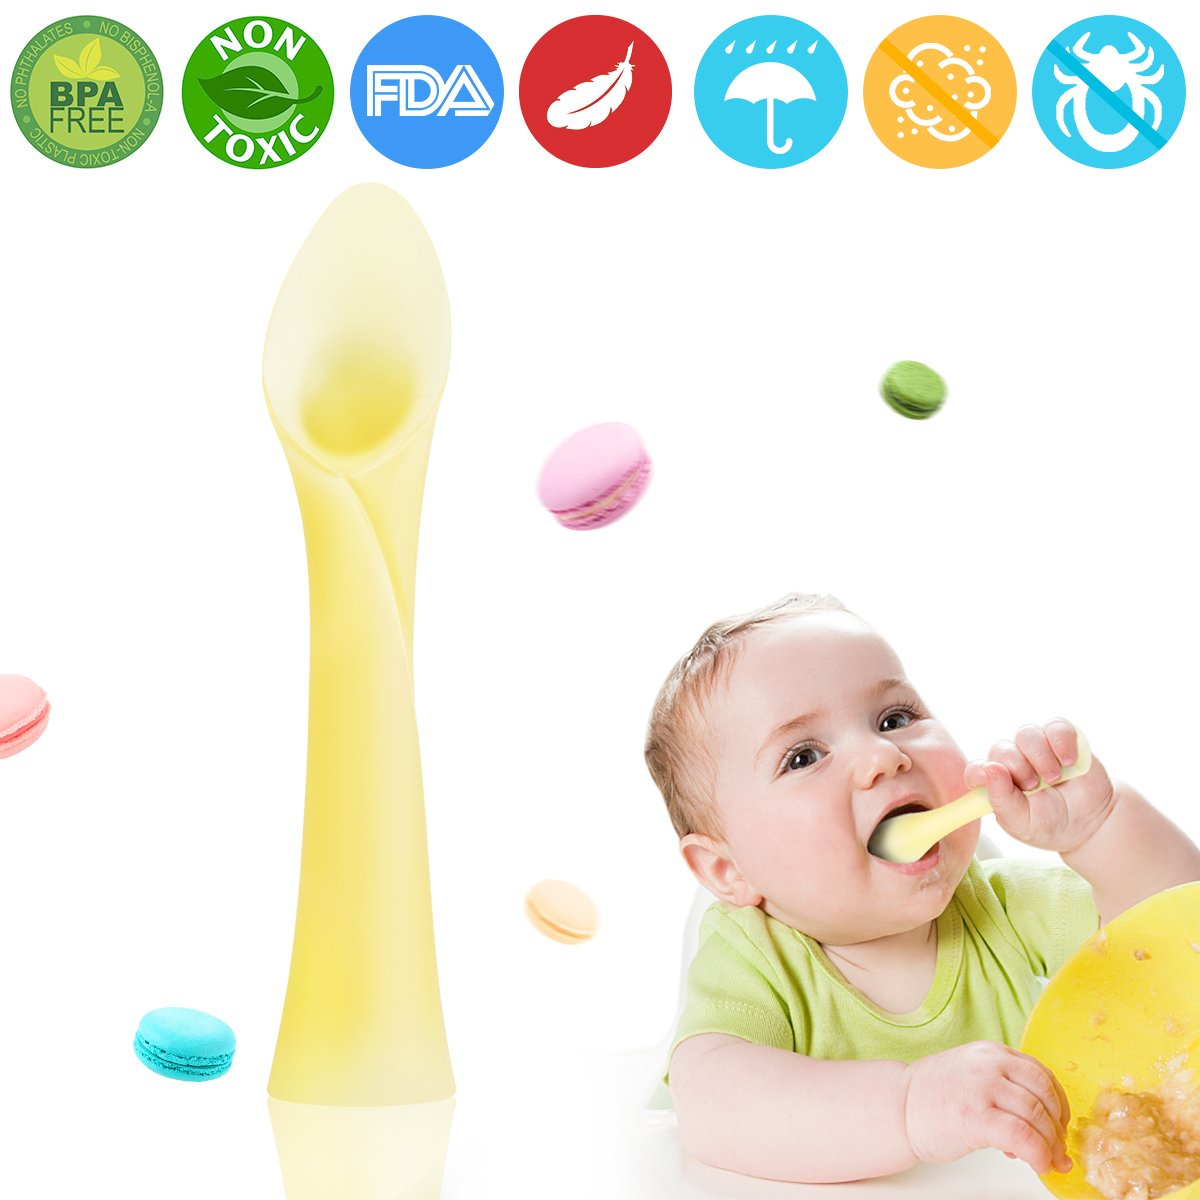 Baby Training Spoon, Soft Tip Silicone Self Feeding Spoon Teether Infant Spoon Baby Starter Spoon First Stage Led Weaning Spoon Toddler Spoon Baby Infant... by T Mall